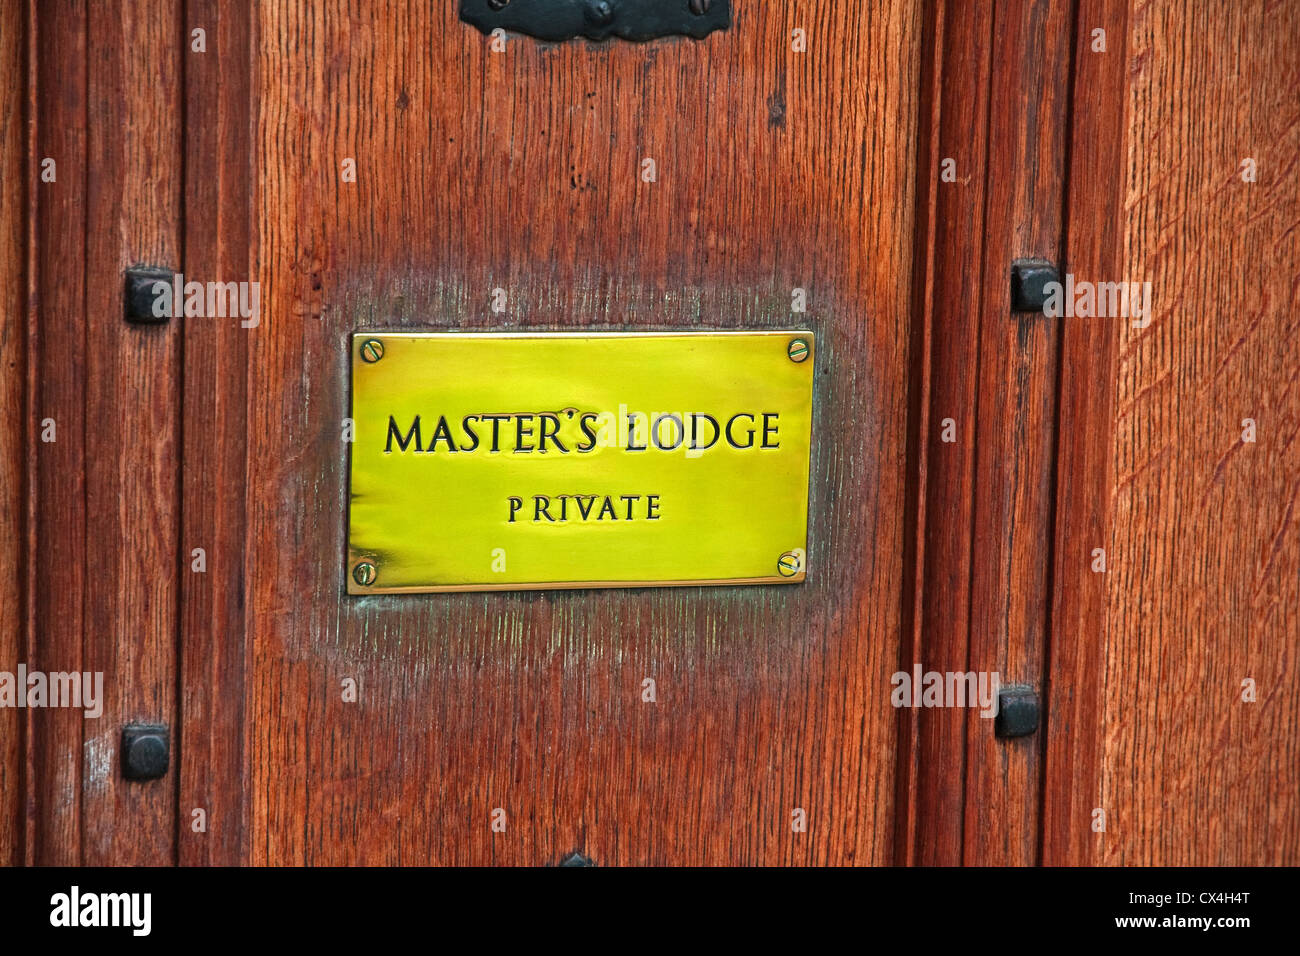 Sign on door of Master's Lodge - Stock Image